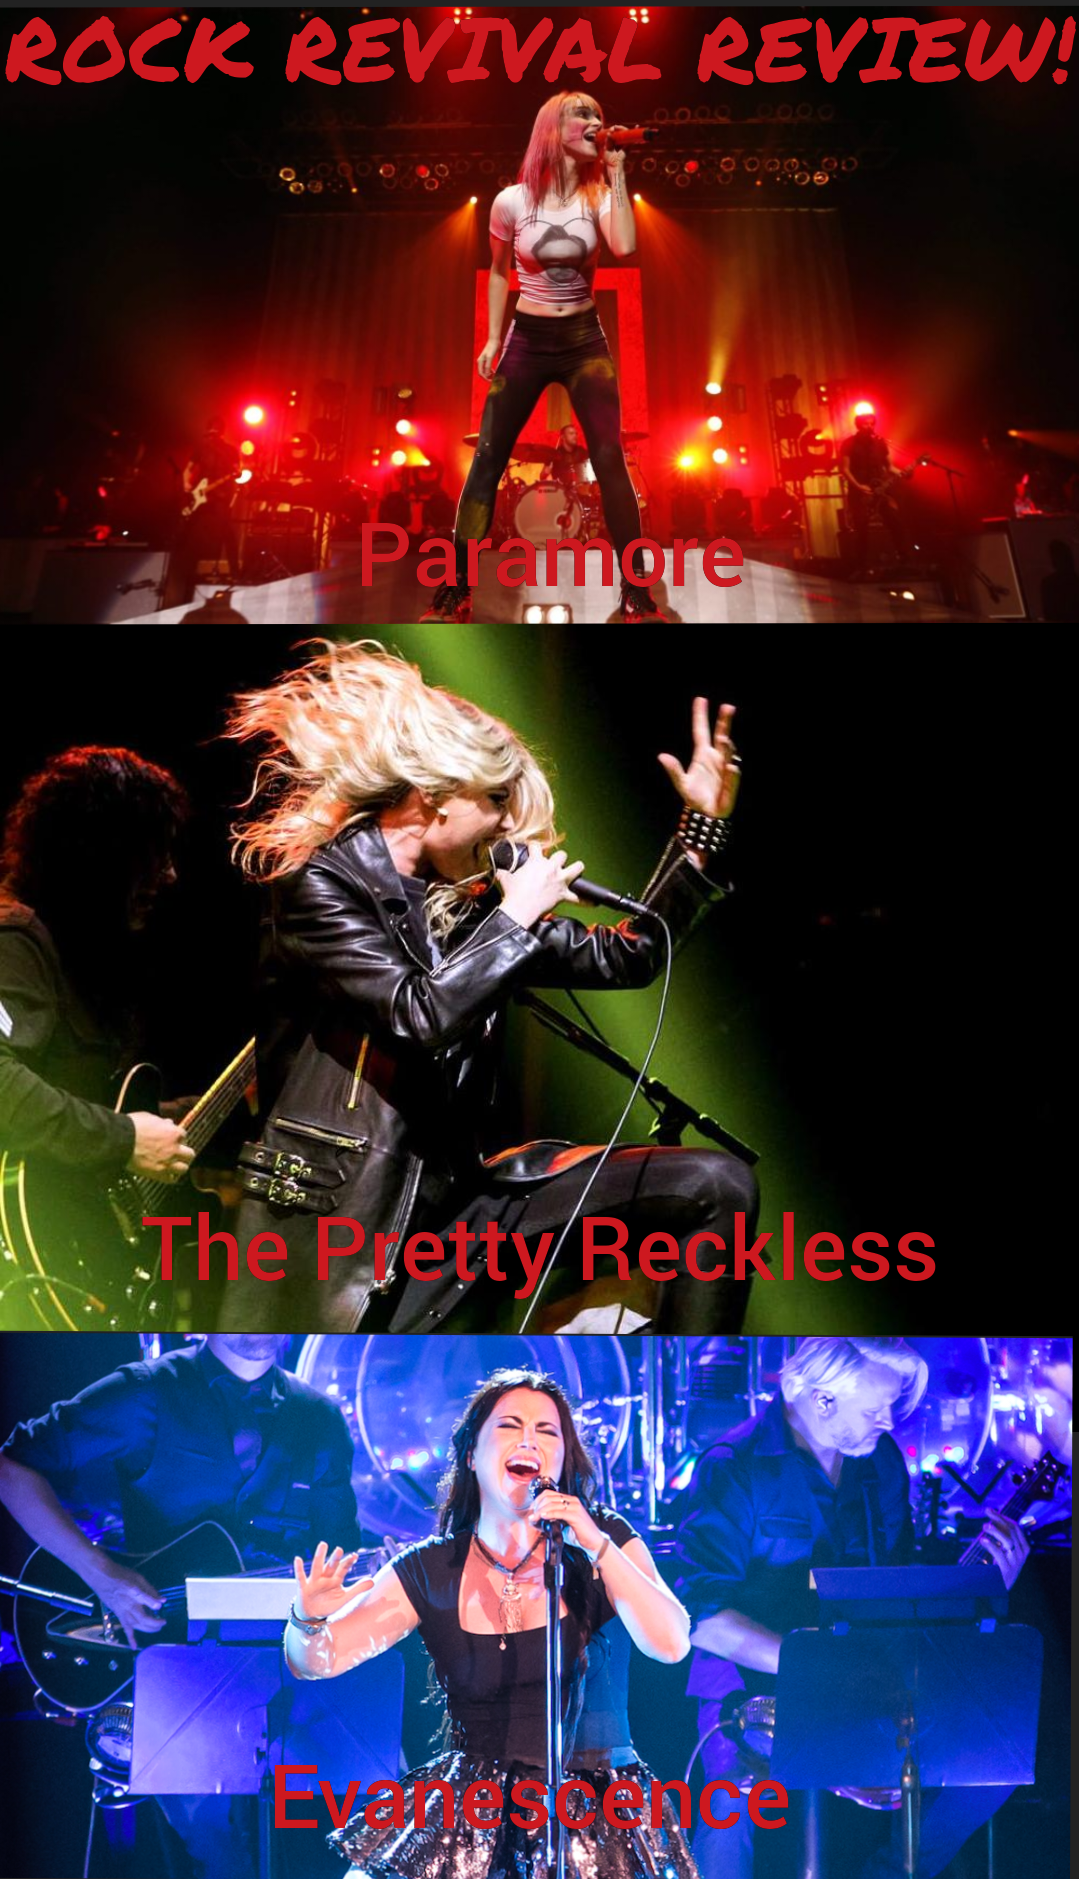 Rock Revival Review: Paramore, The Pretty Reckless & Evanescence